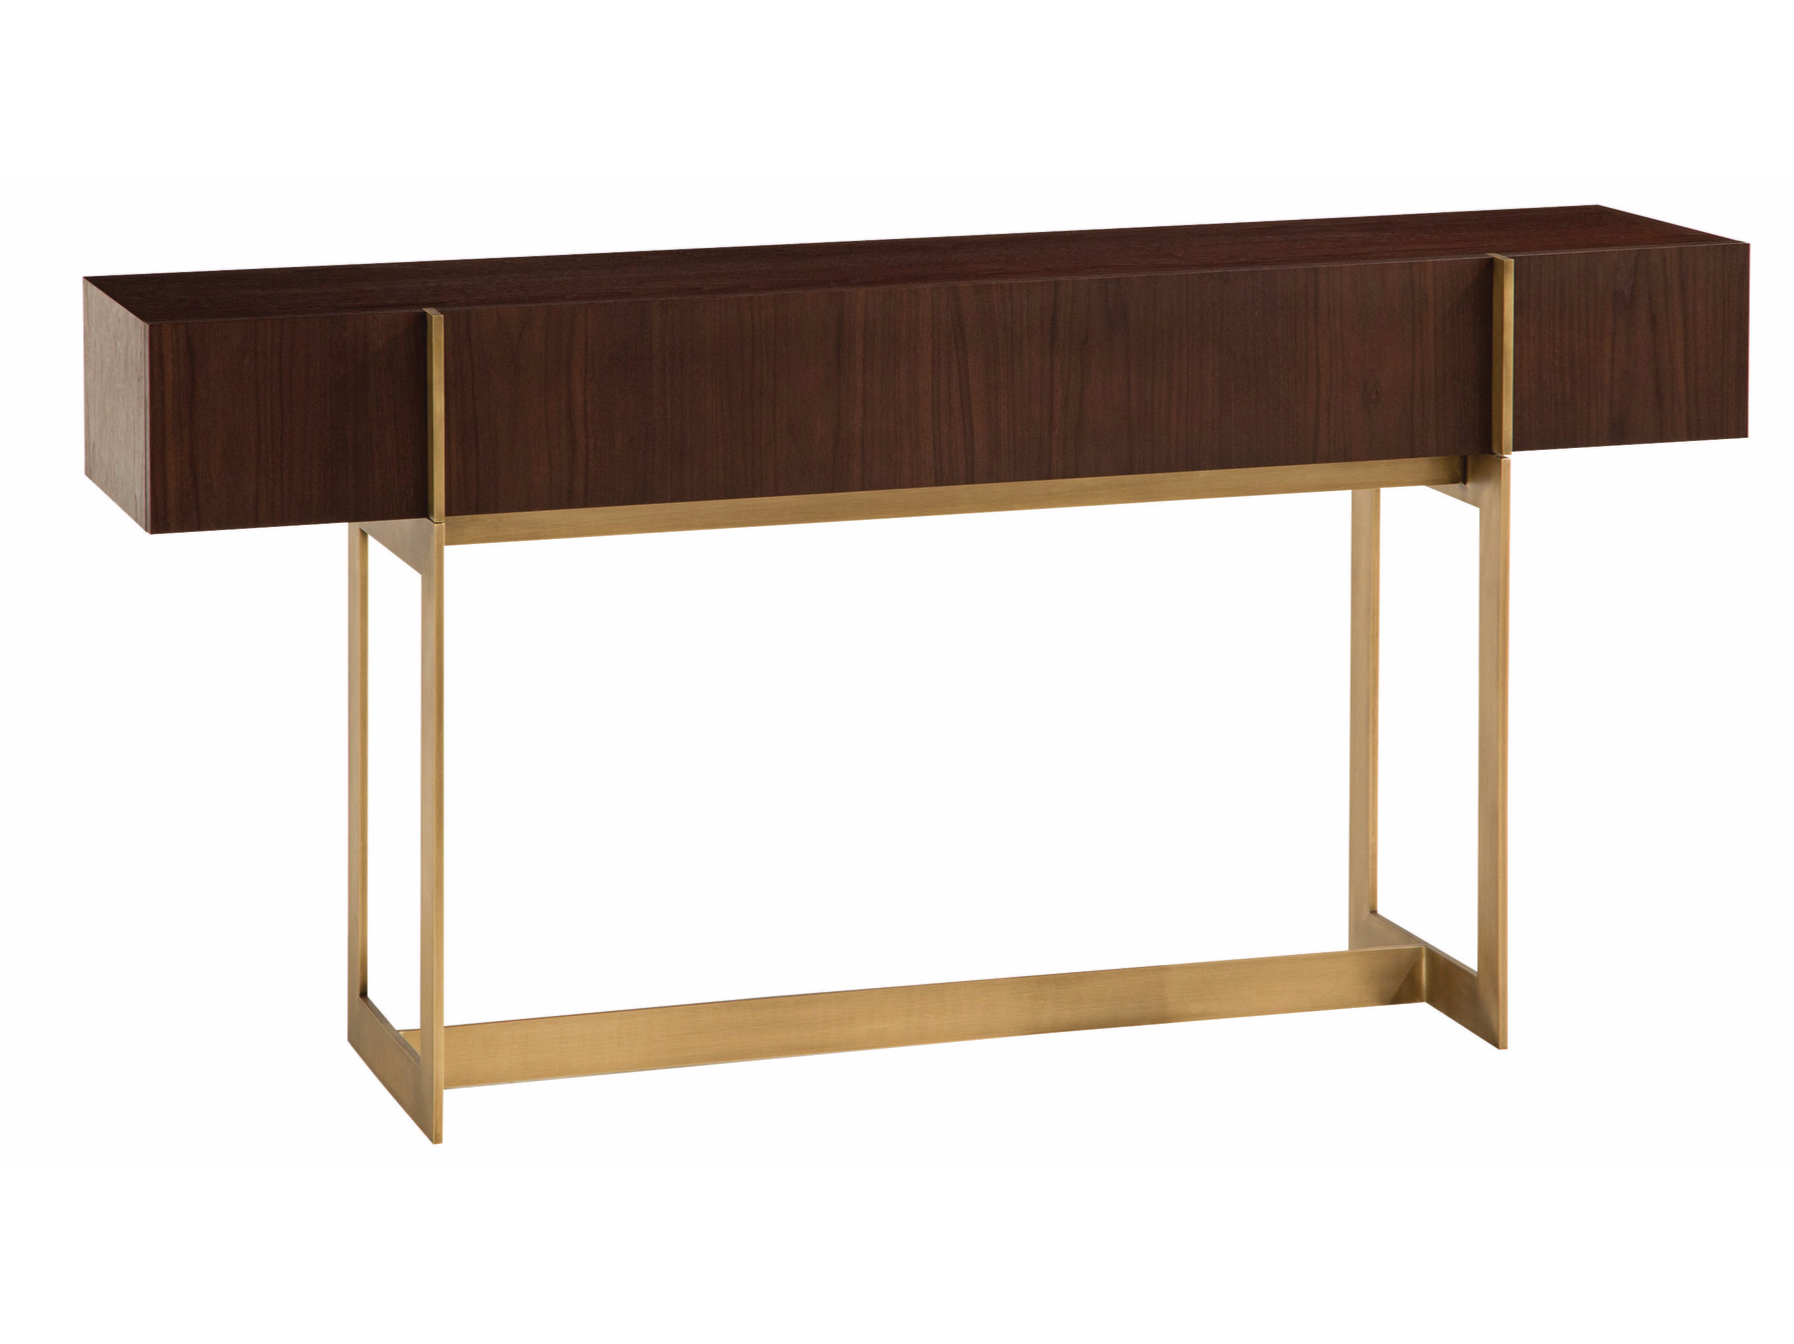 Viyet designer furniture tables roche bobois indo console table - Table Ardoise Roche Bobois Chaios Com